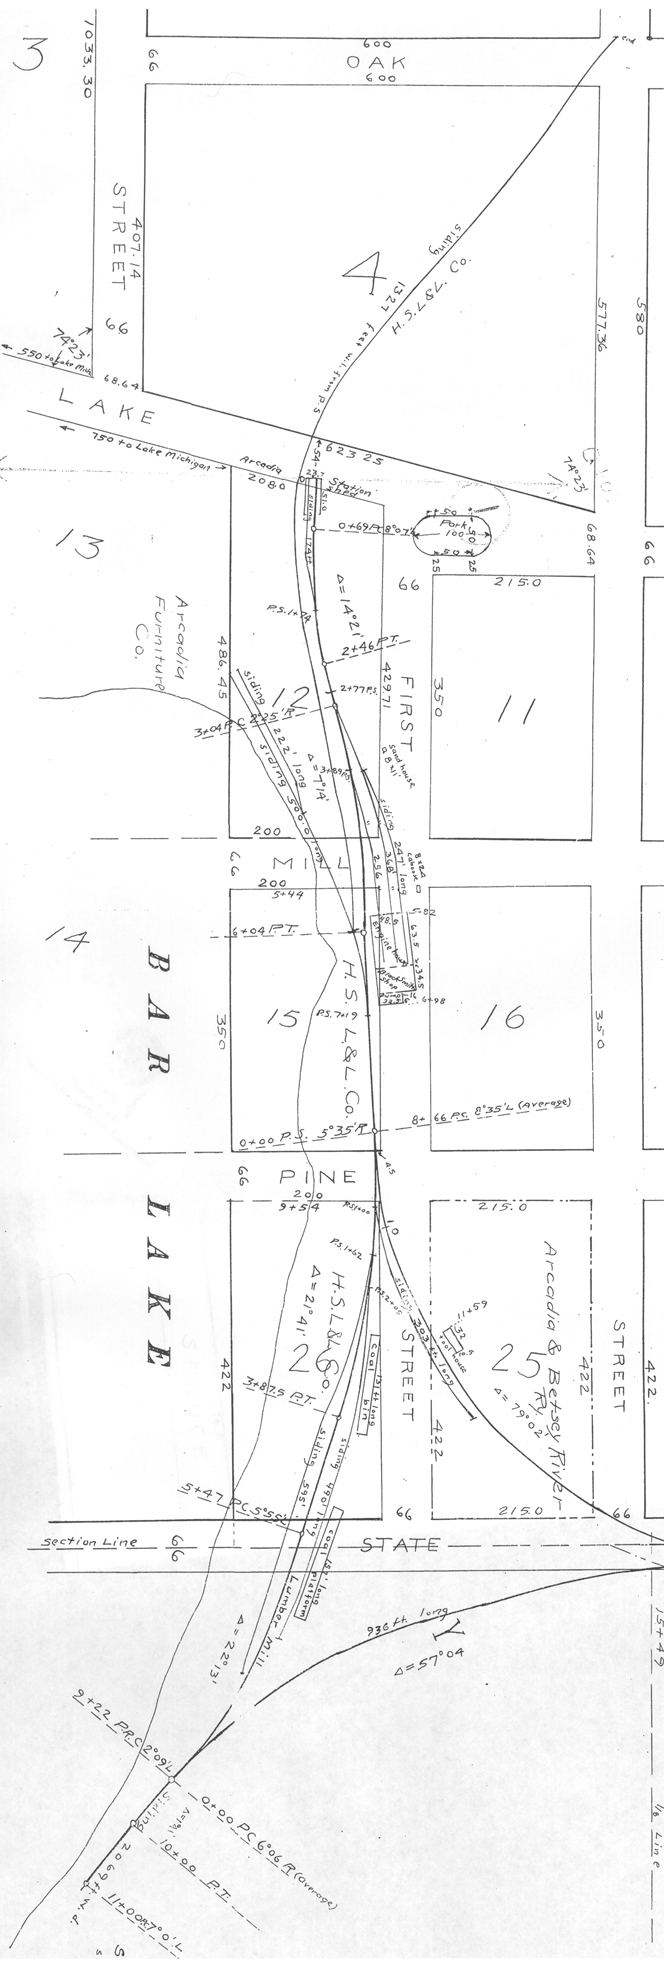 1914 Valuation Map of Northeast Arcadia Lake Shore